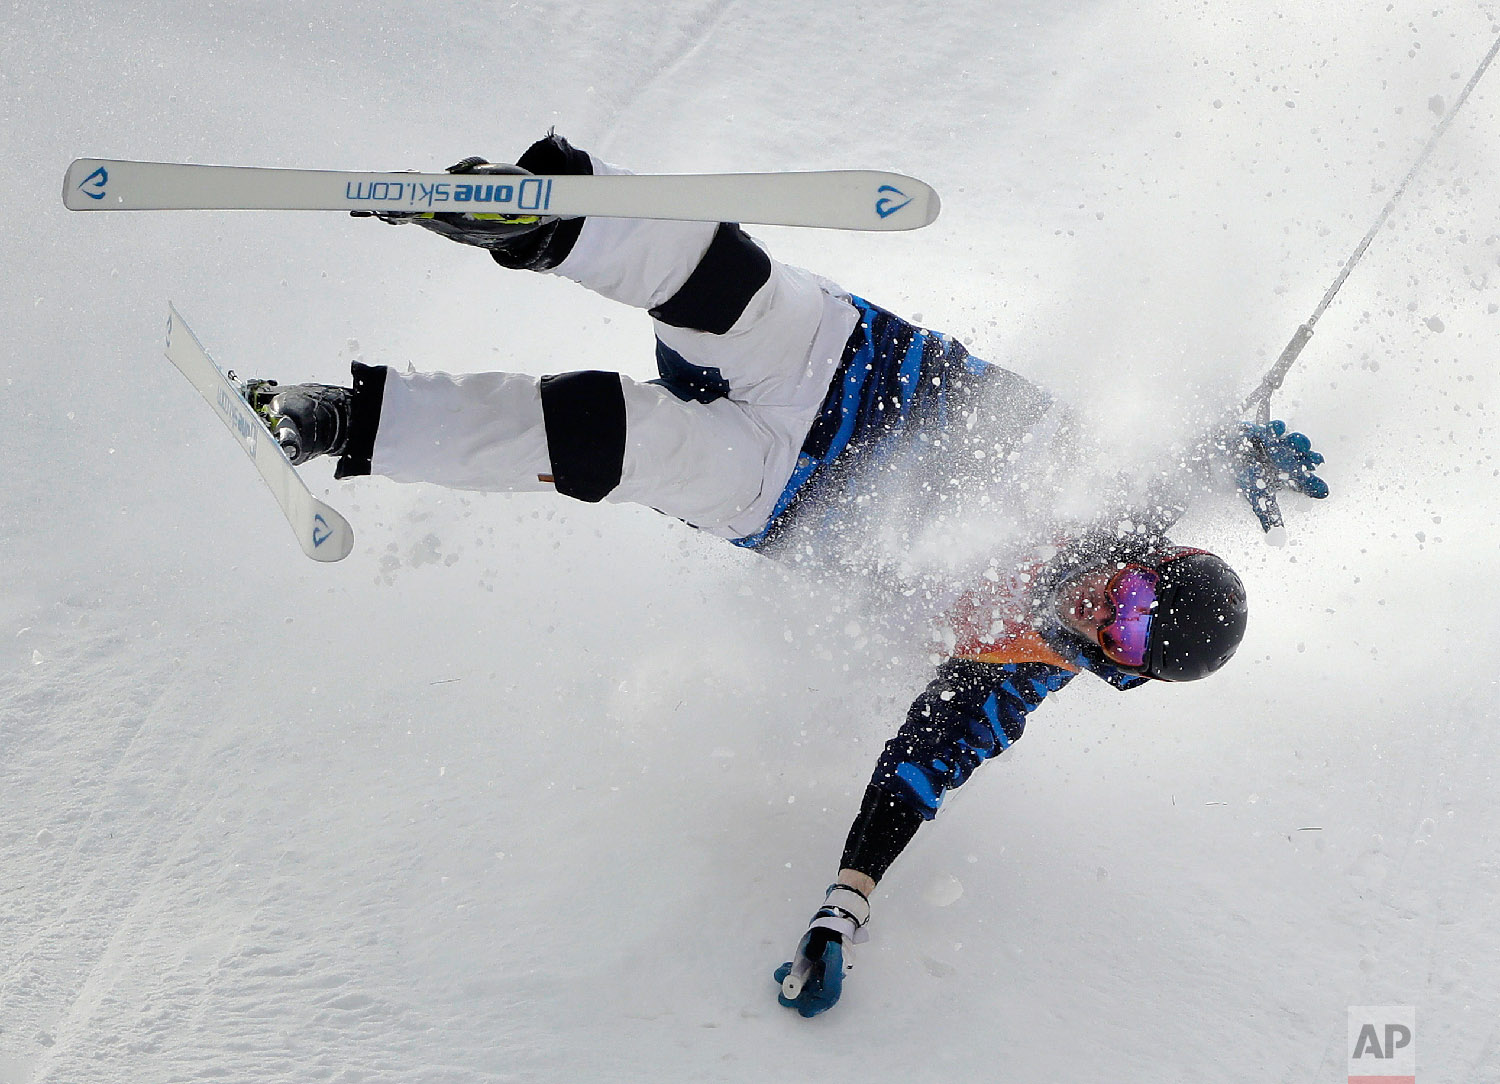 Jussi Penttala, of Finland, crashes during the men's moguls qualifying at Phoenix Snow Park at the 2018 Winter Olympics in Pyeongchang, South Korea, Friday, Feb. 9, 2018. (AP Photo/Gregory Bull)